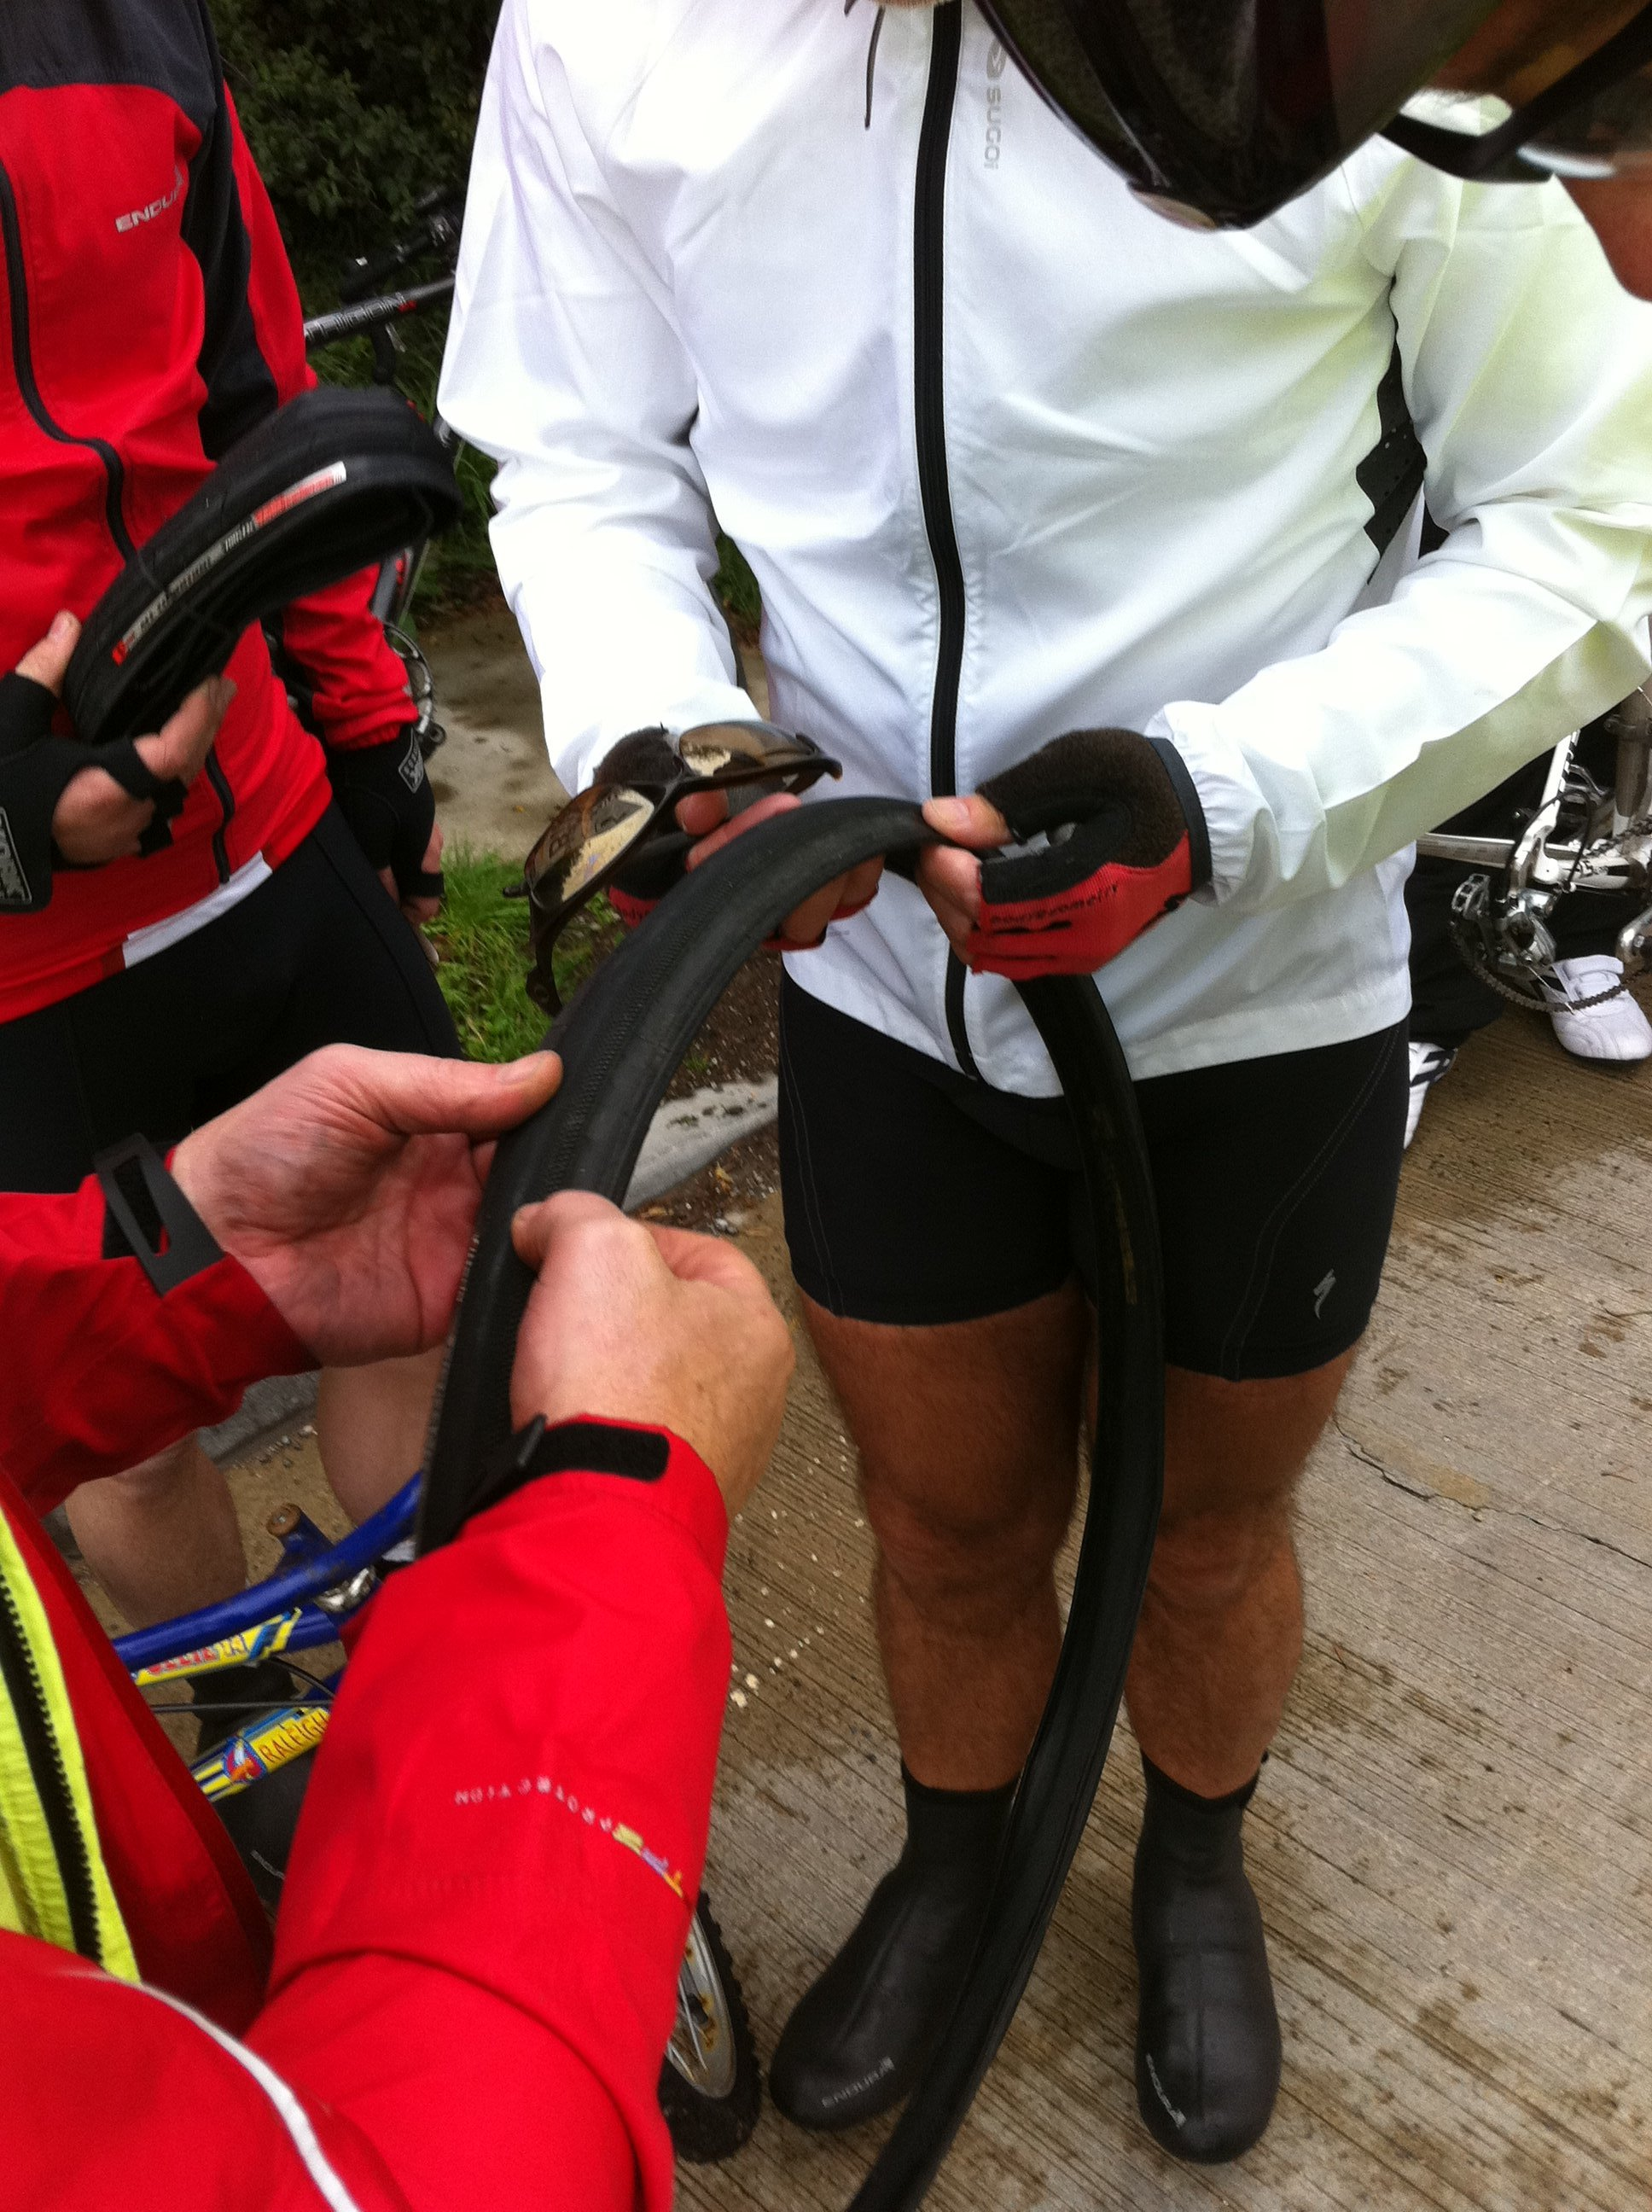 James and his punctures